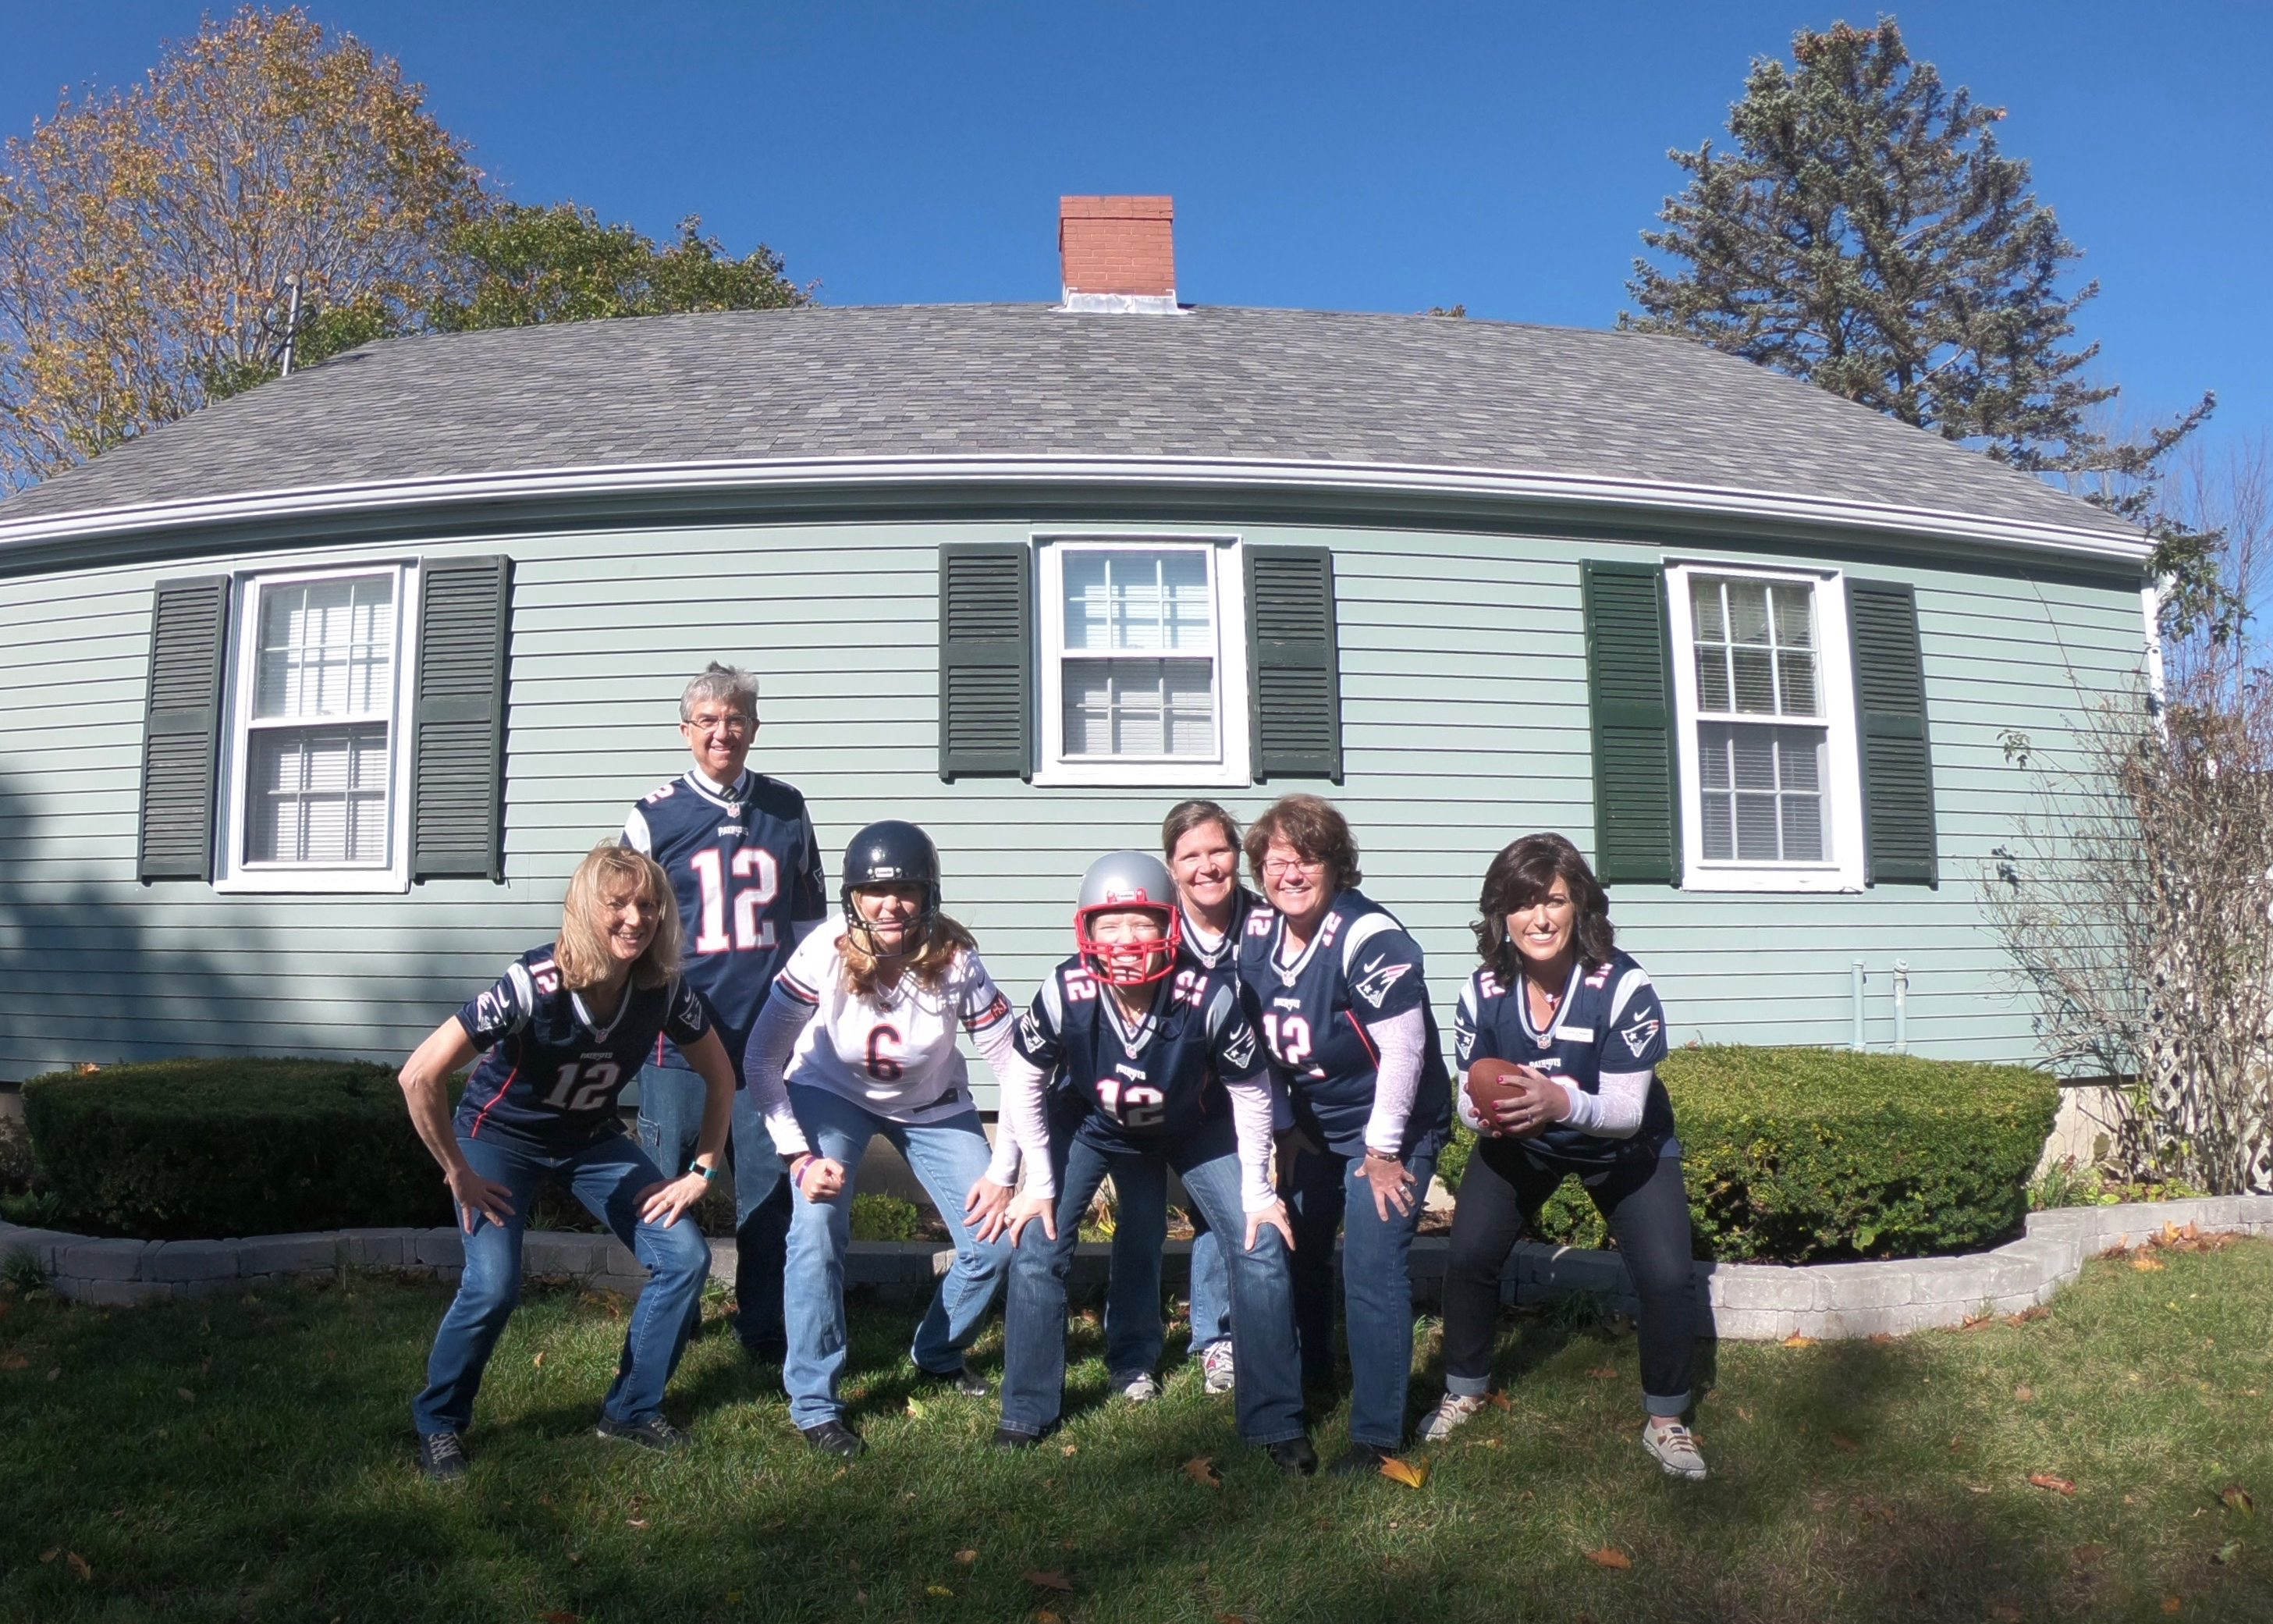 Cheering for the home team. Go New England Patriots!